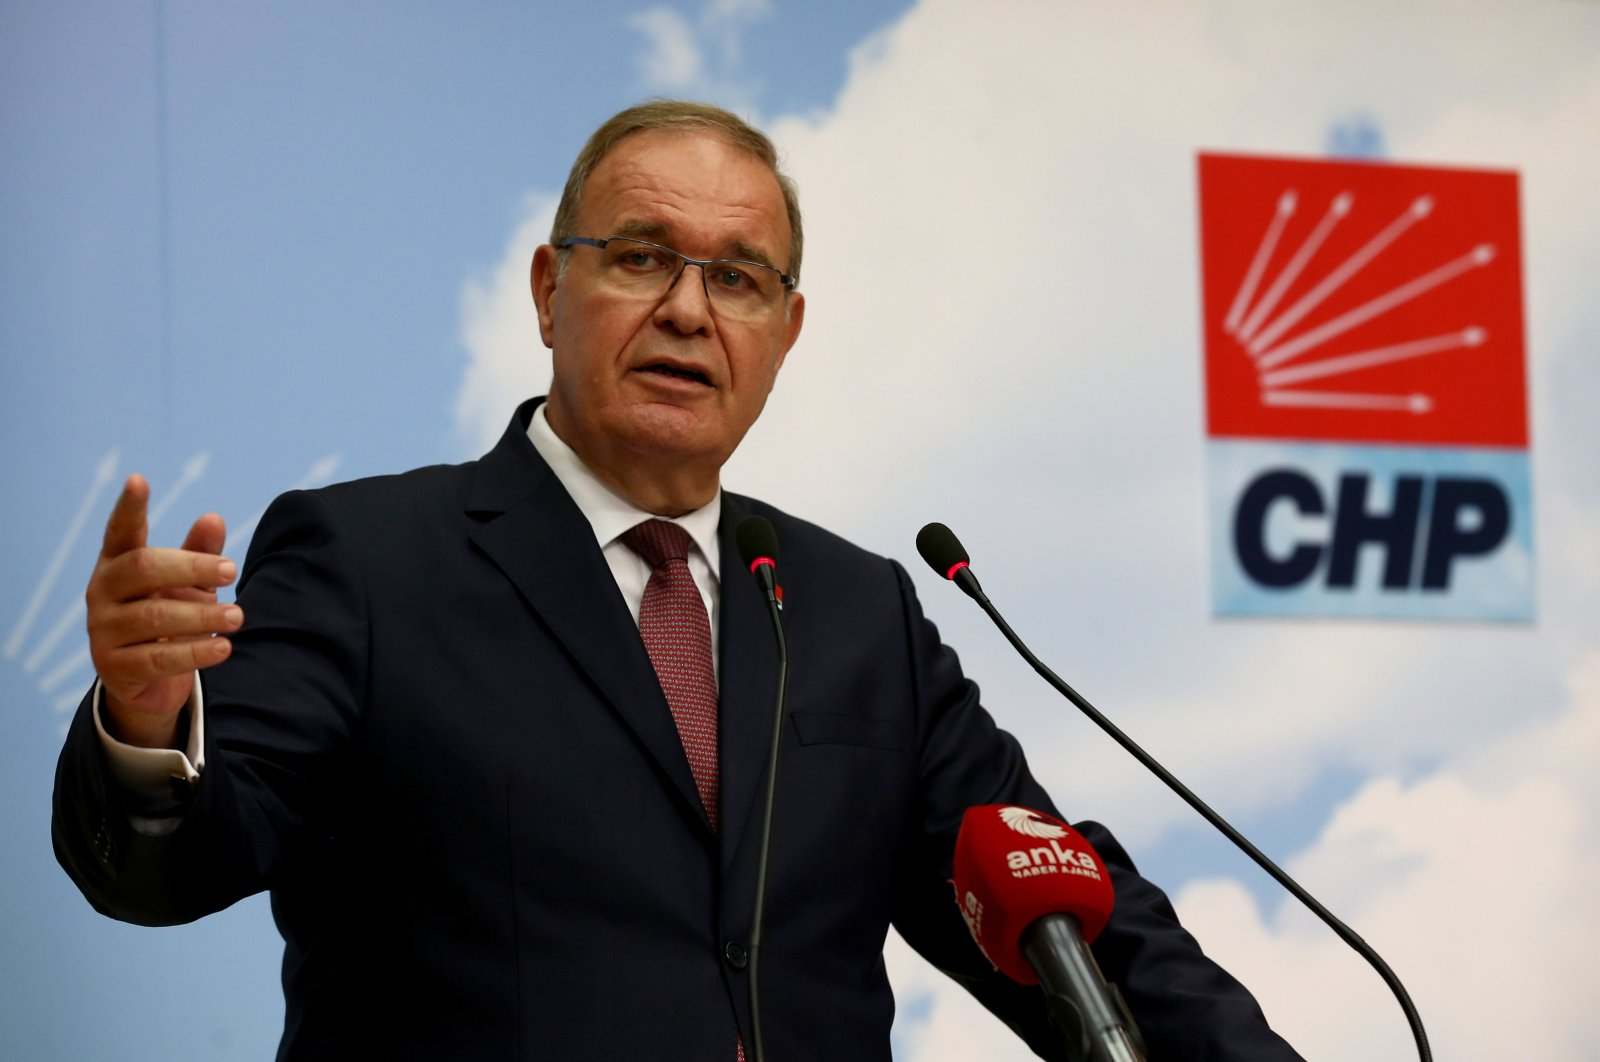 Faik Öztrak, the main opposition Republican People's Party (CHP) vice-chair and spokesperson, speaks during a press conference in the capital Ankara, Sept. 7, 2020. (AA Photo)